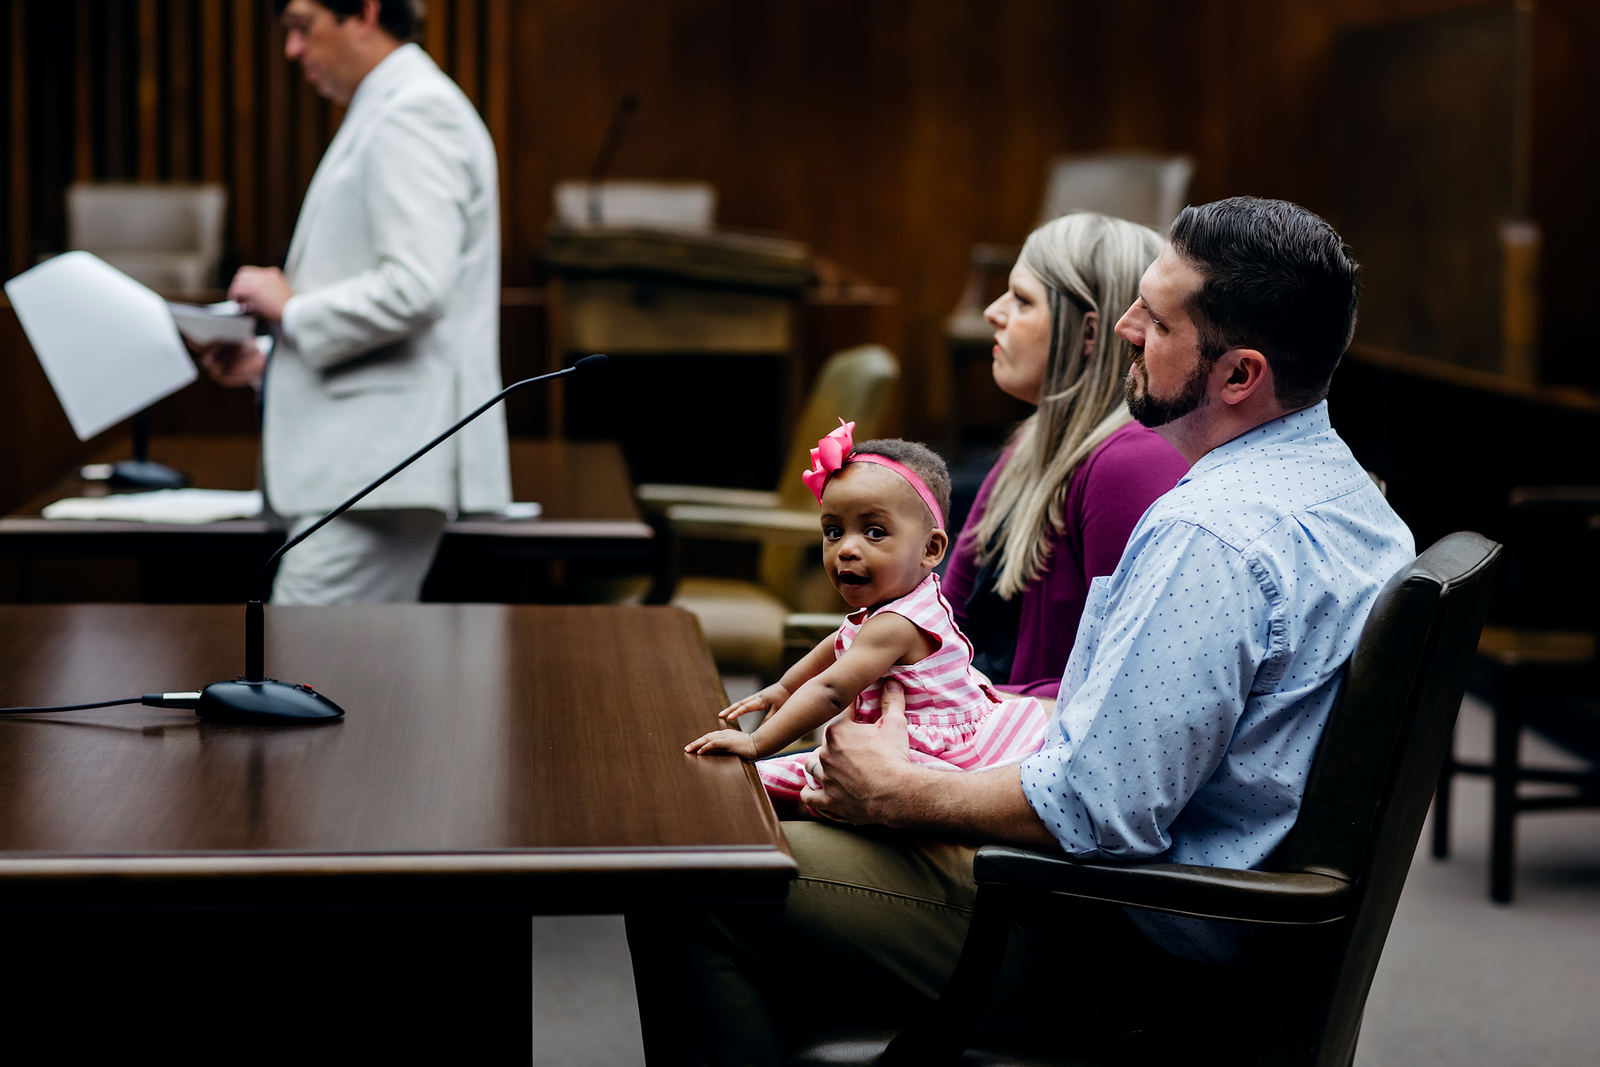 family photographer, columbus, ga, atlanta, documentary, photojournalism, courthouse, adoption_9479